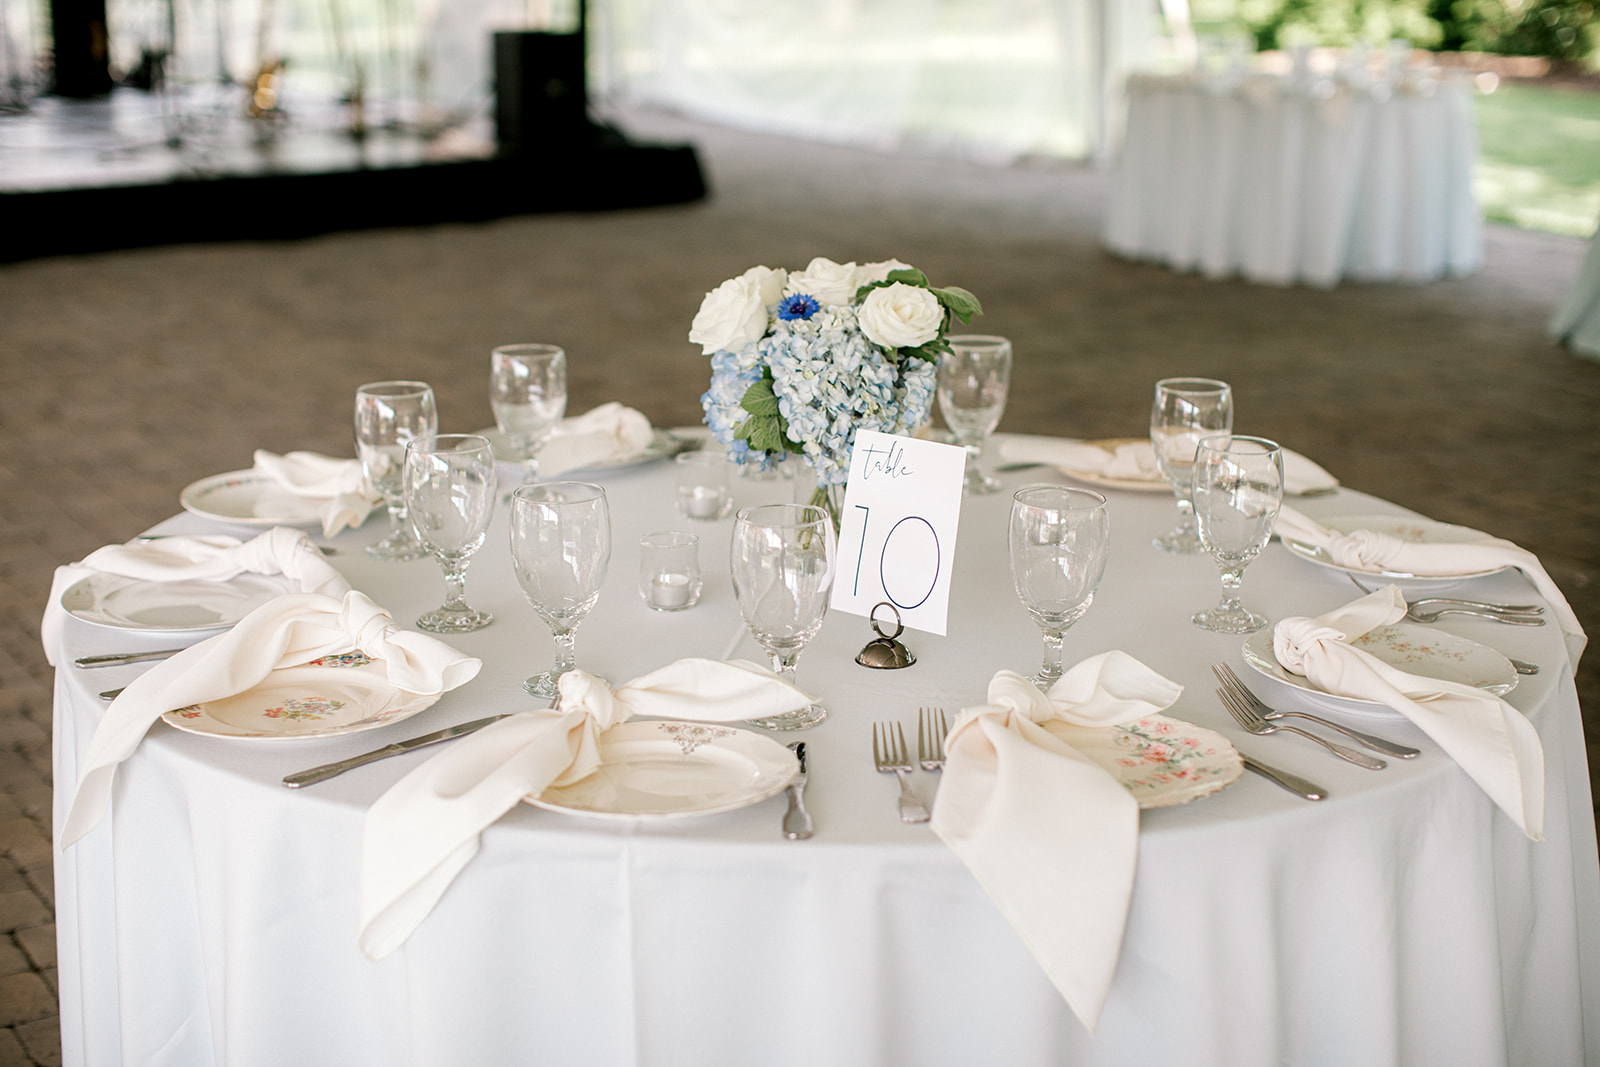 Shades of blue Ravenswood Mansion Wedding by Jayde J. Smith Events